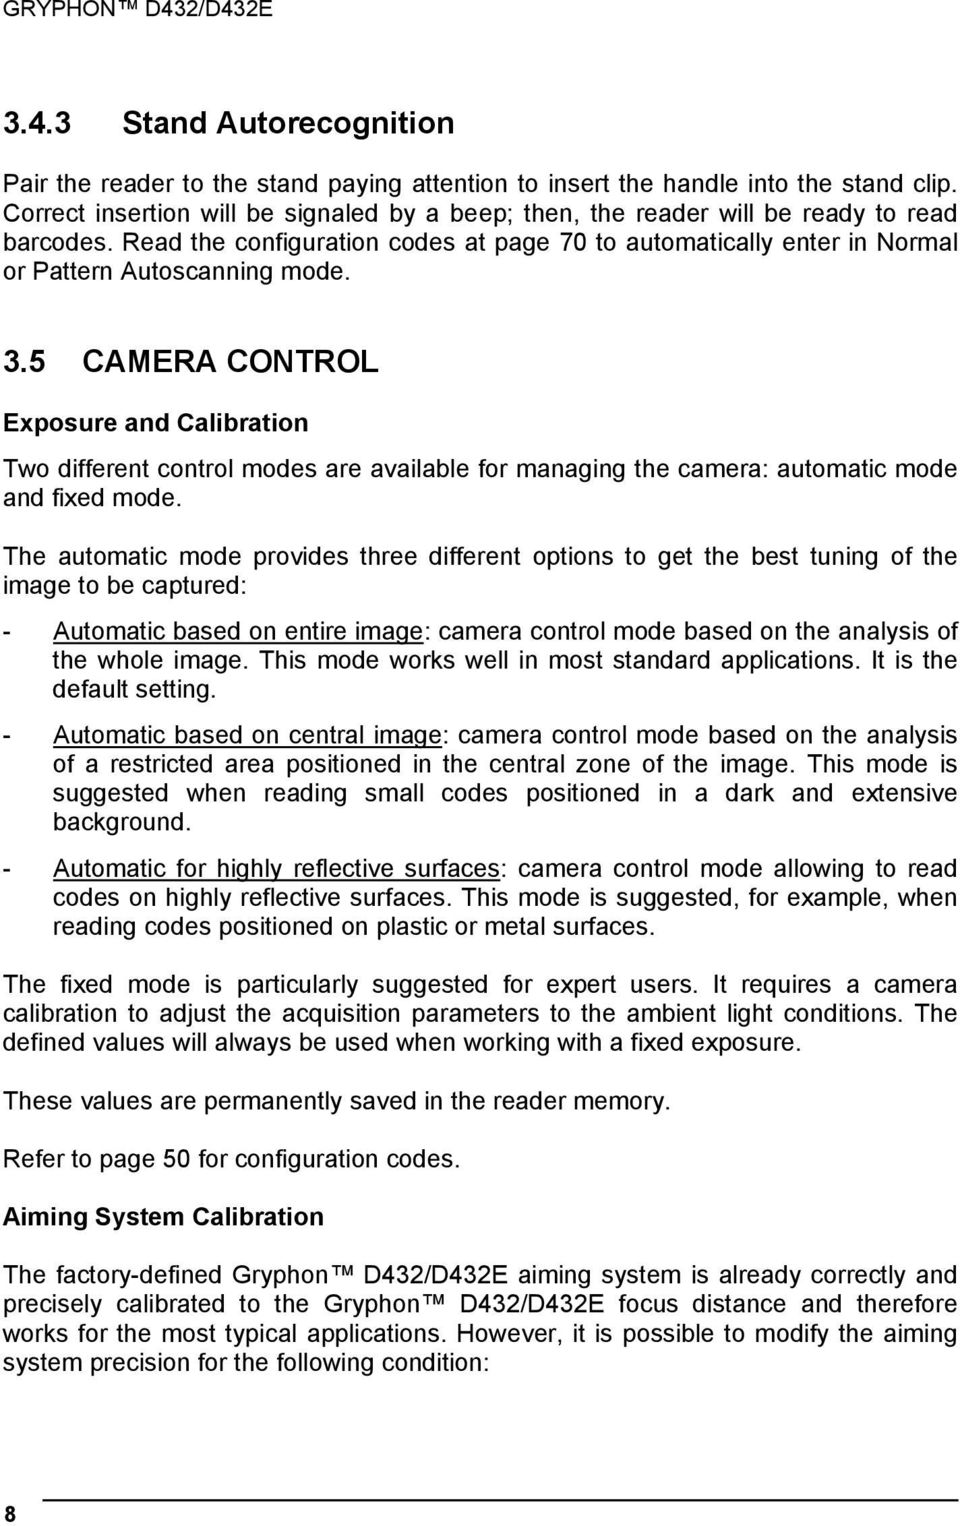 5 CAMERA CONTROL Exposure and Calibration Two different control modes are available for managing the camera: automatic mode and fixed mode.